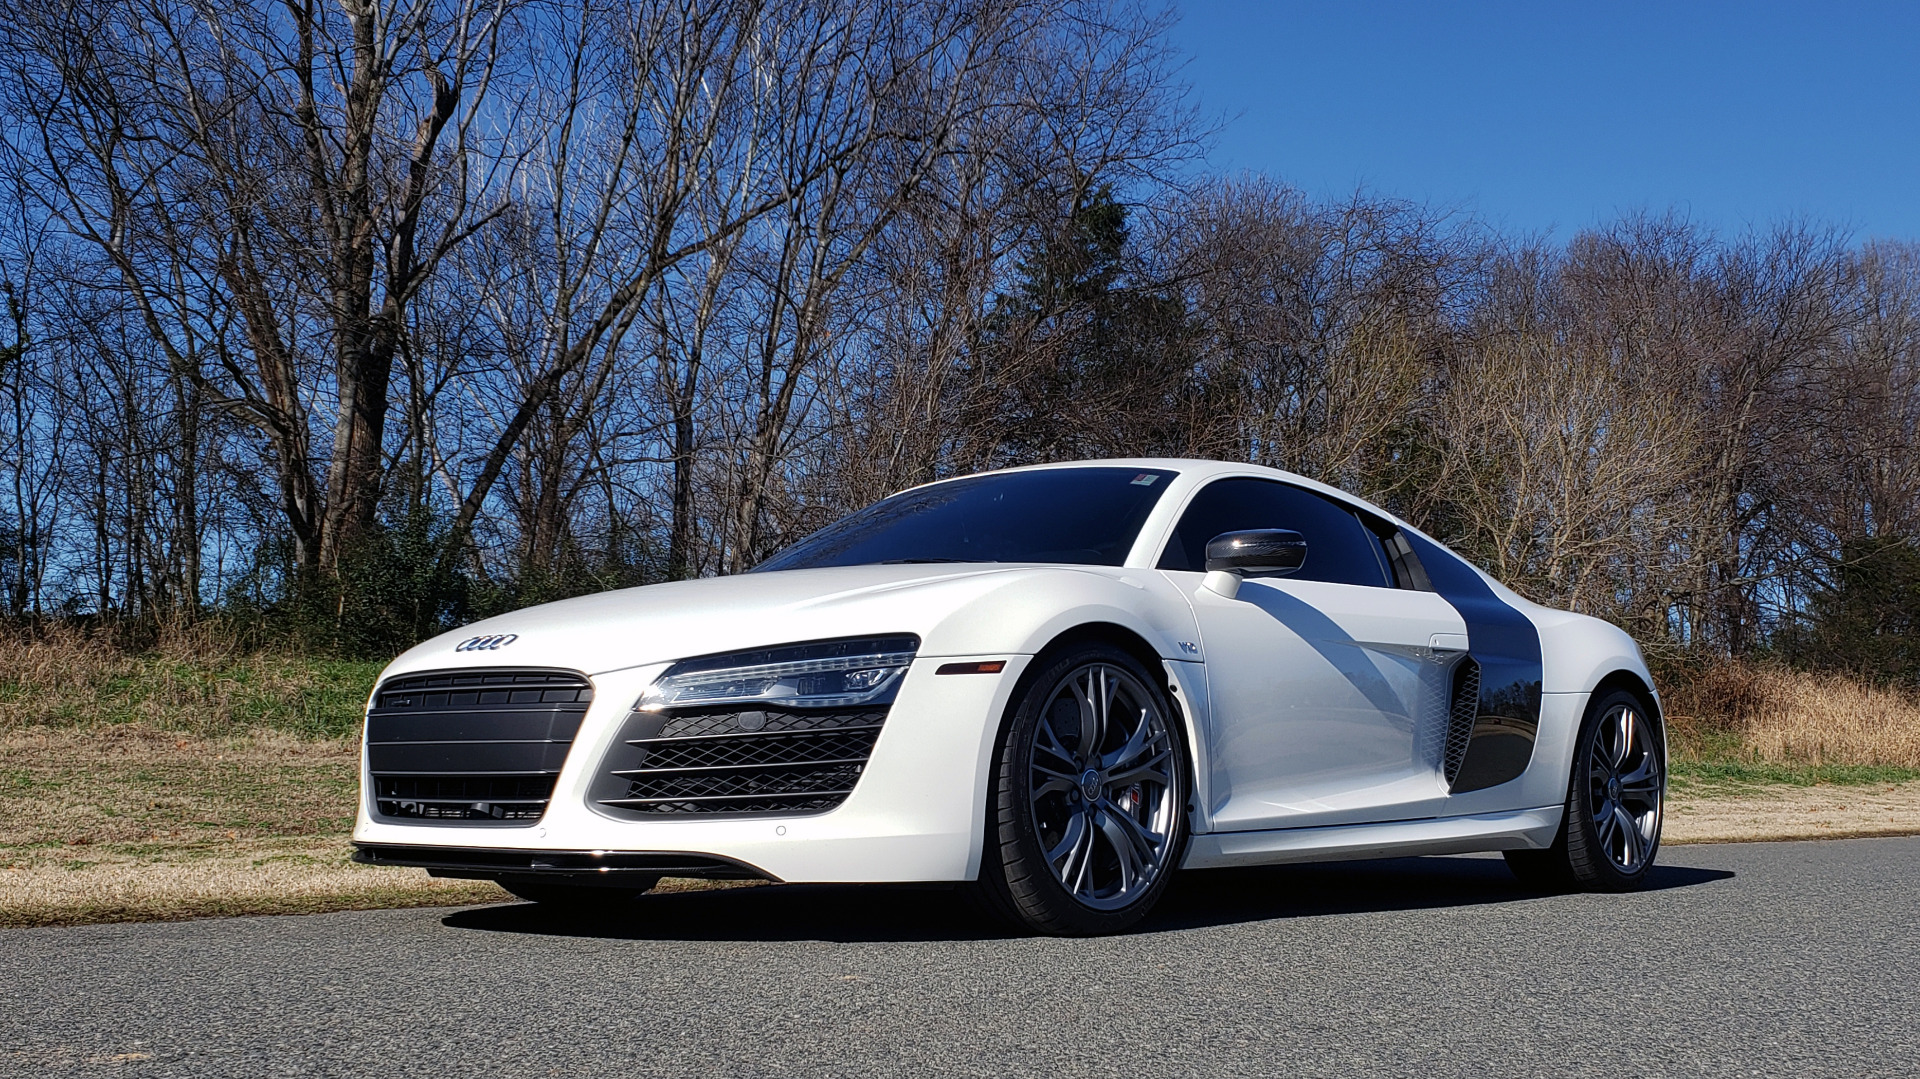 Used 2015 Audi R8 V10 PLUS / S-TRONIC / B&O SOUND / SPORT EXH / REARVIEW for sale Sold at Formula Imports in Charlotte NC 28227 1